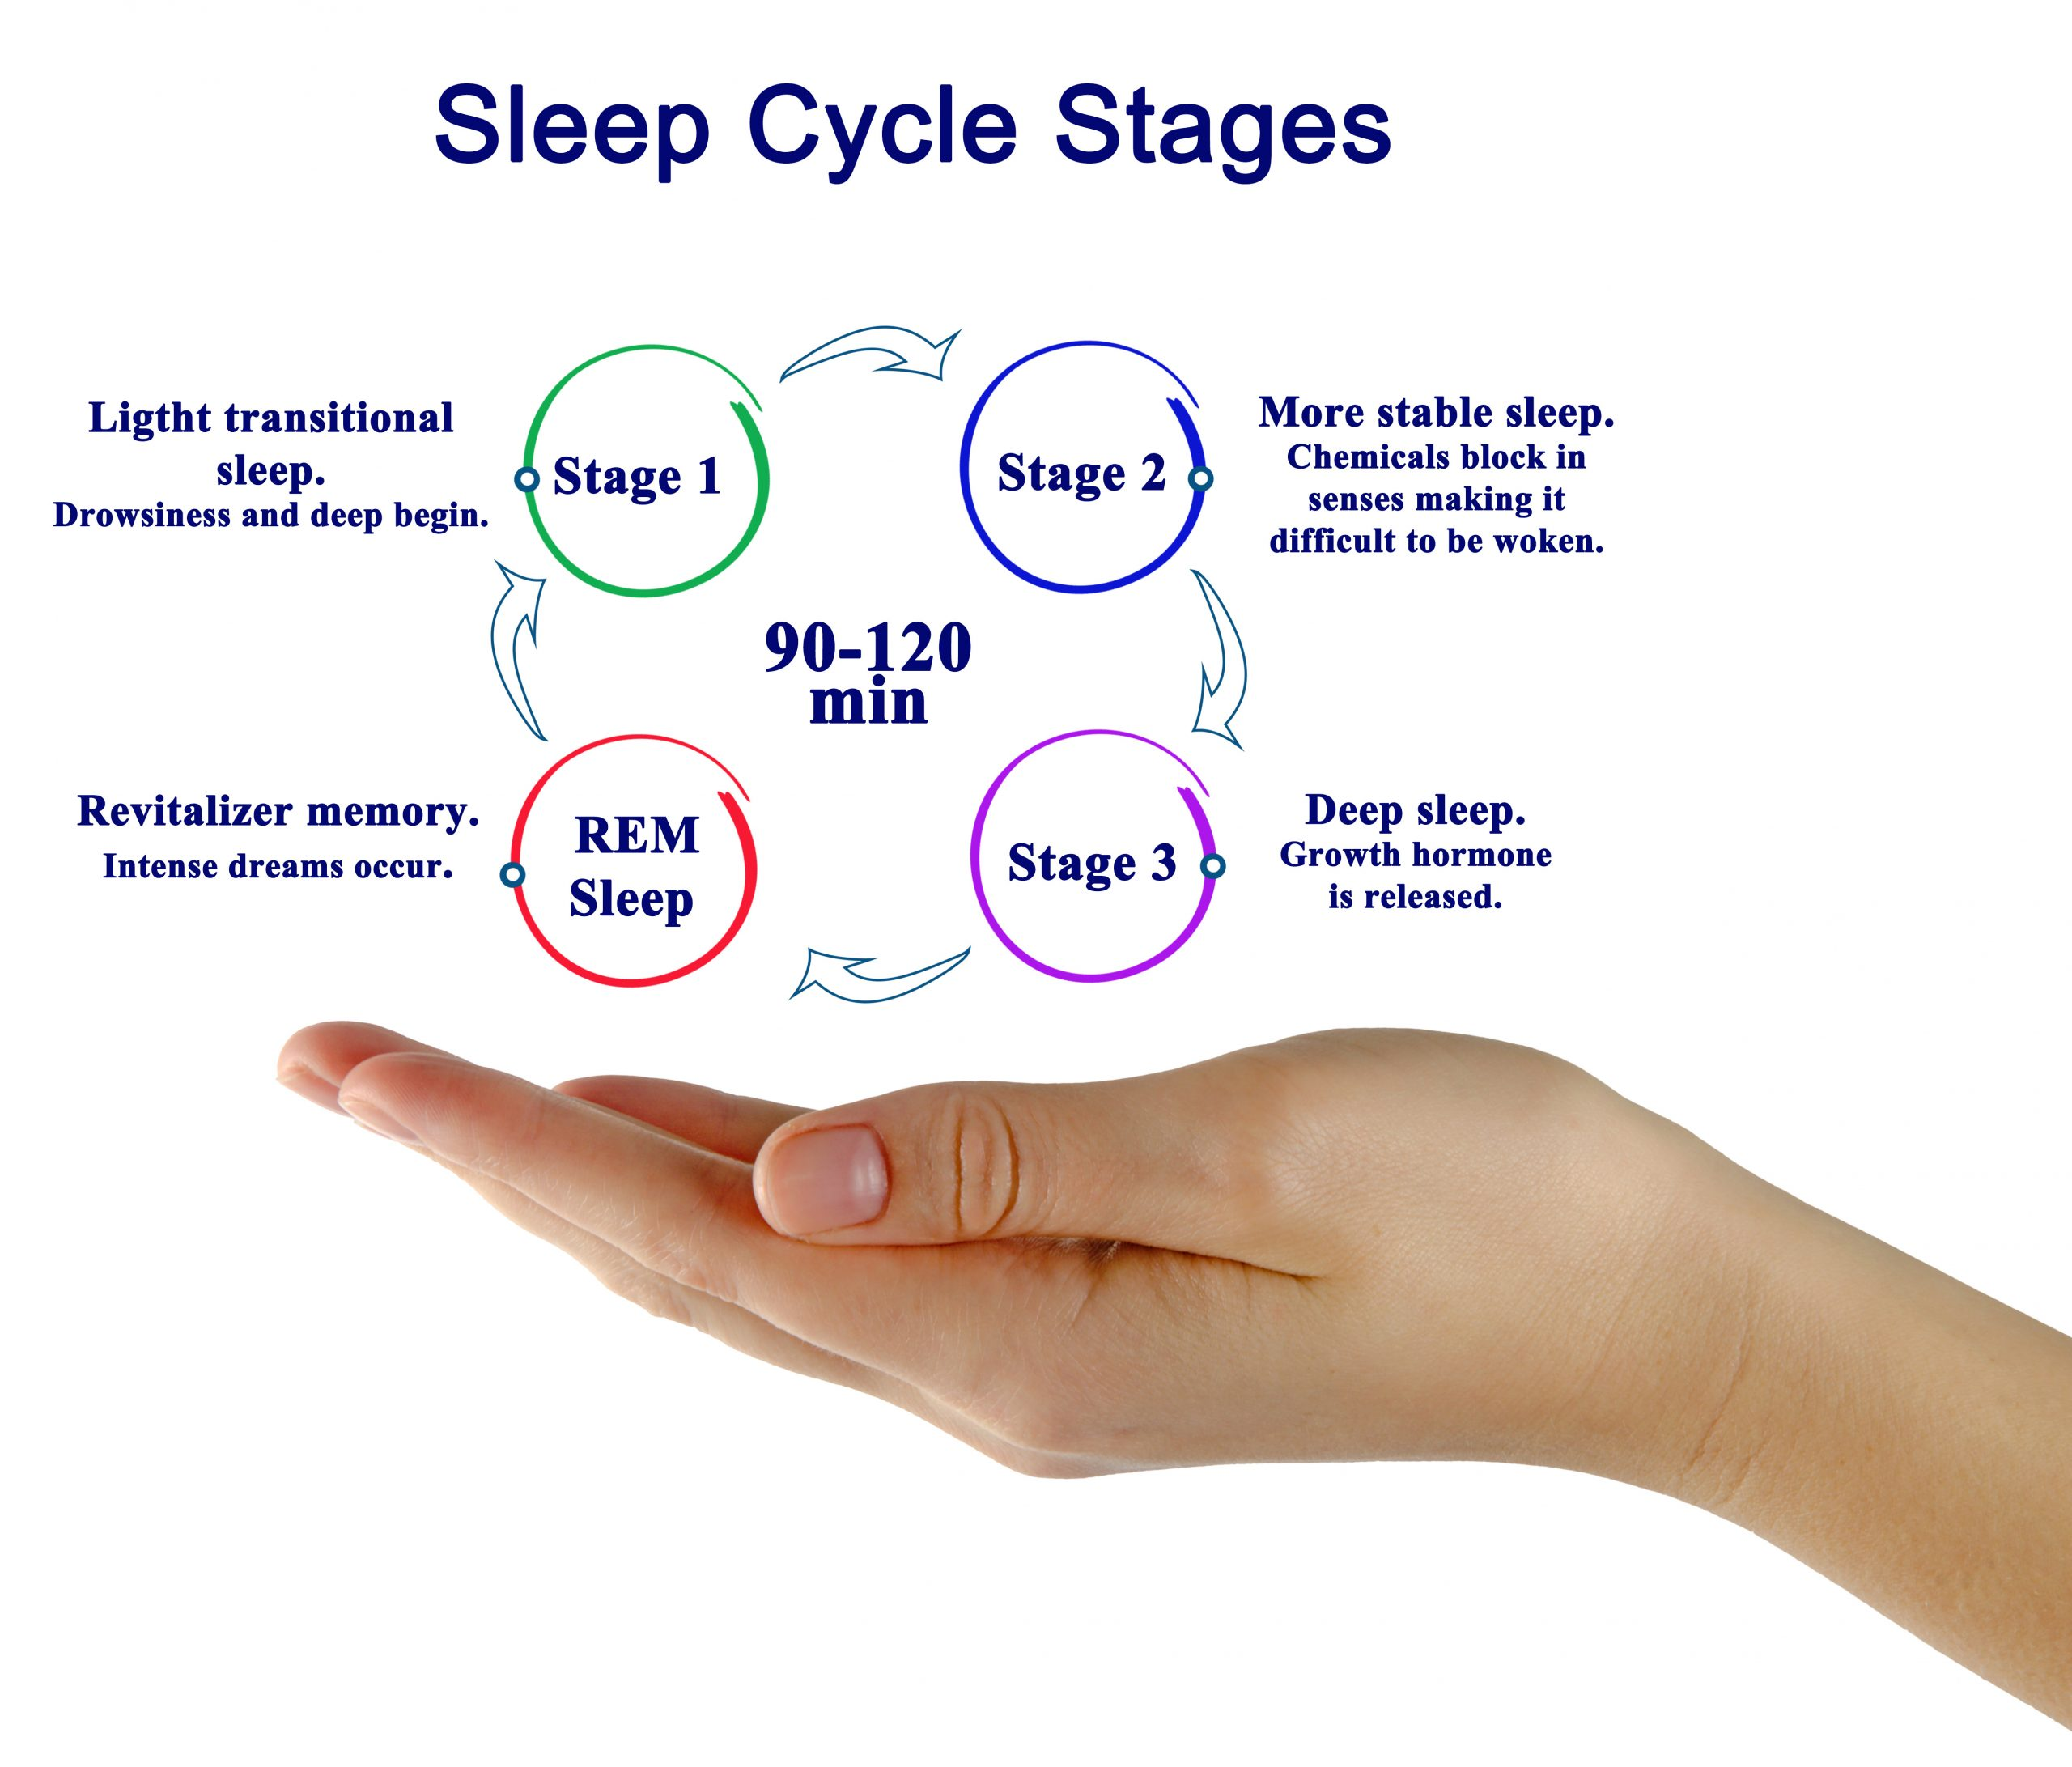 graphic of a person's hand showing the sleep cycle stages